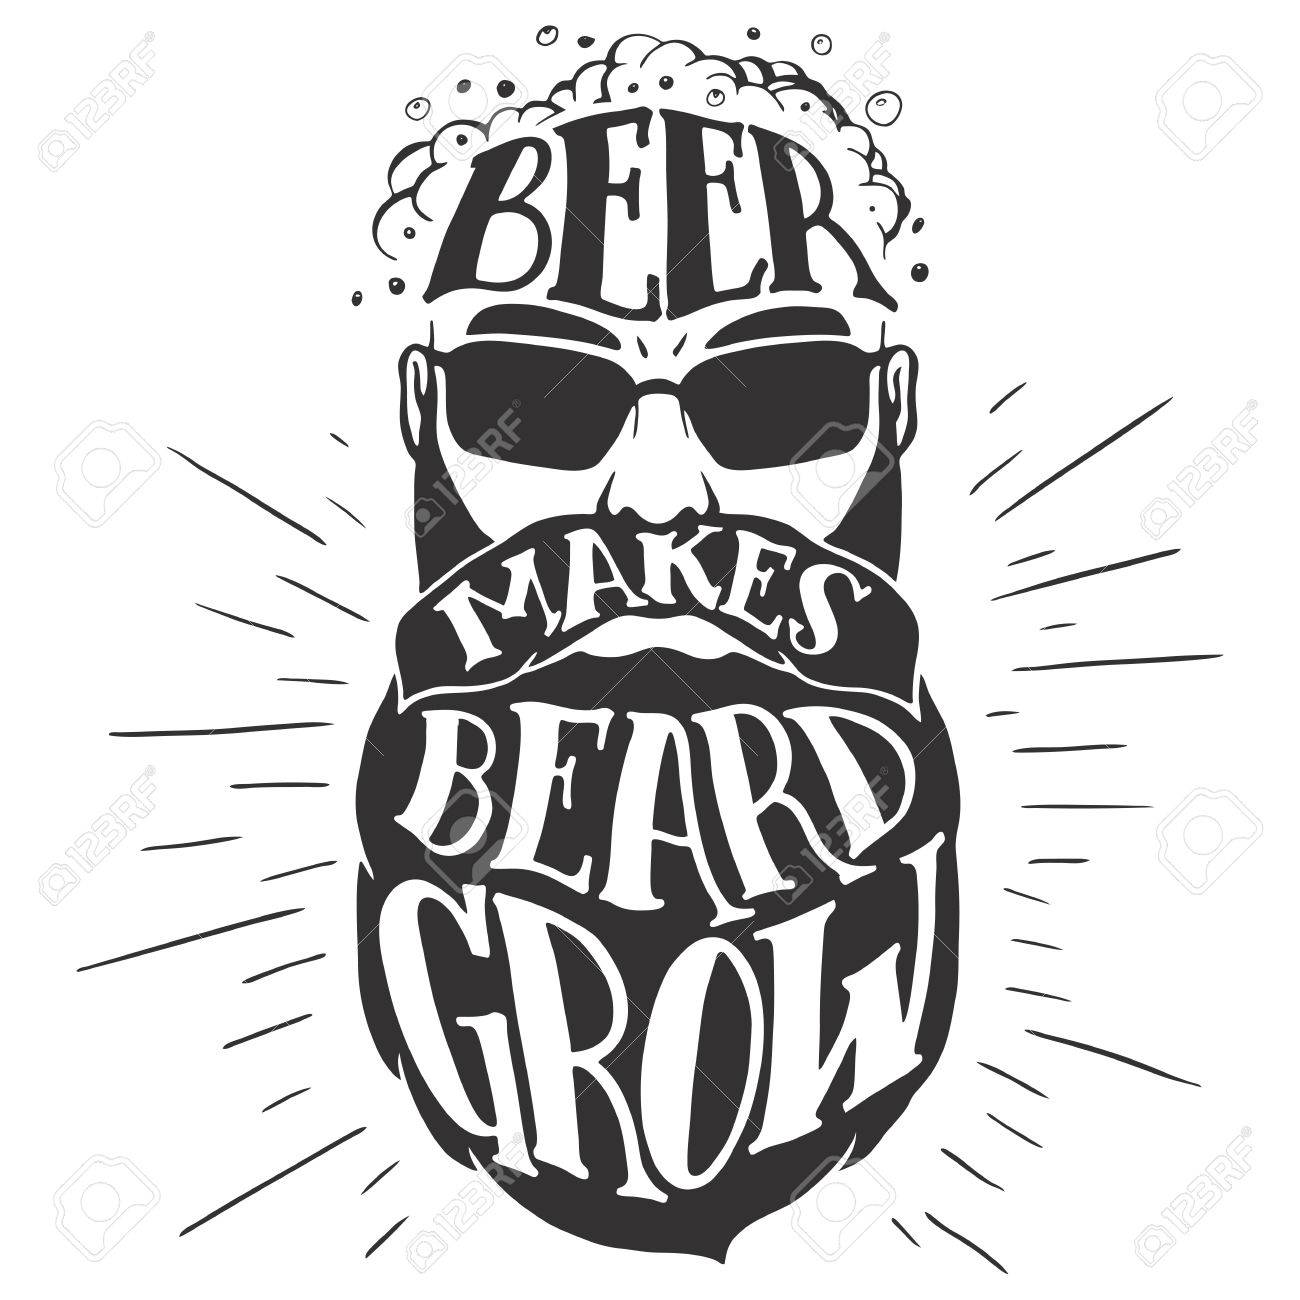 Beer makes beard grow. Oktoberfest illustration of a bearded man isolated on white background. Bearded beer lover. T-shirt print or pub poster - 63872089